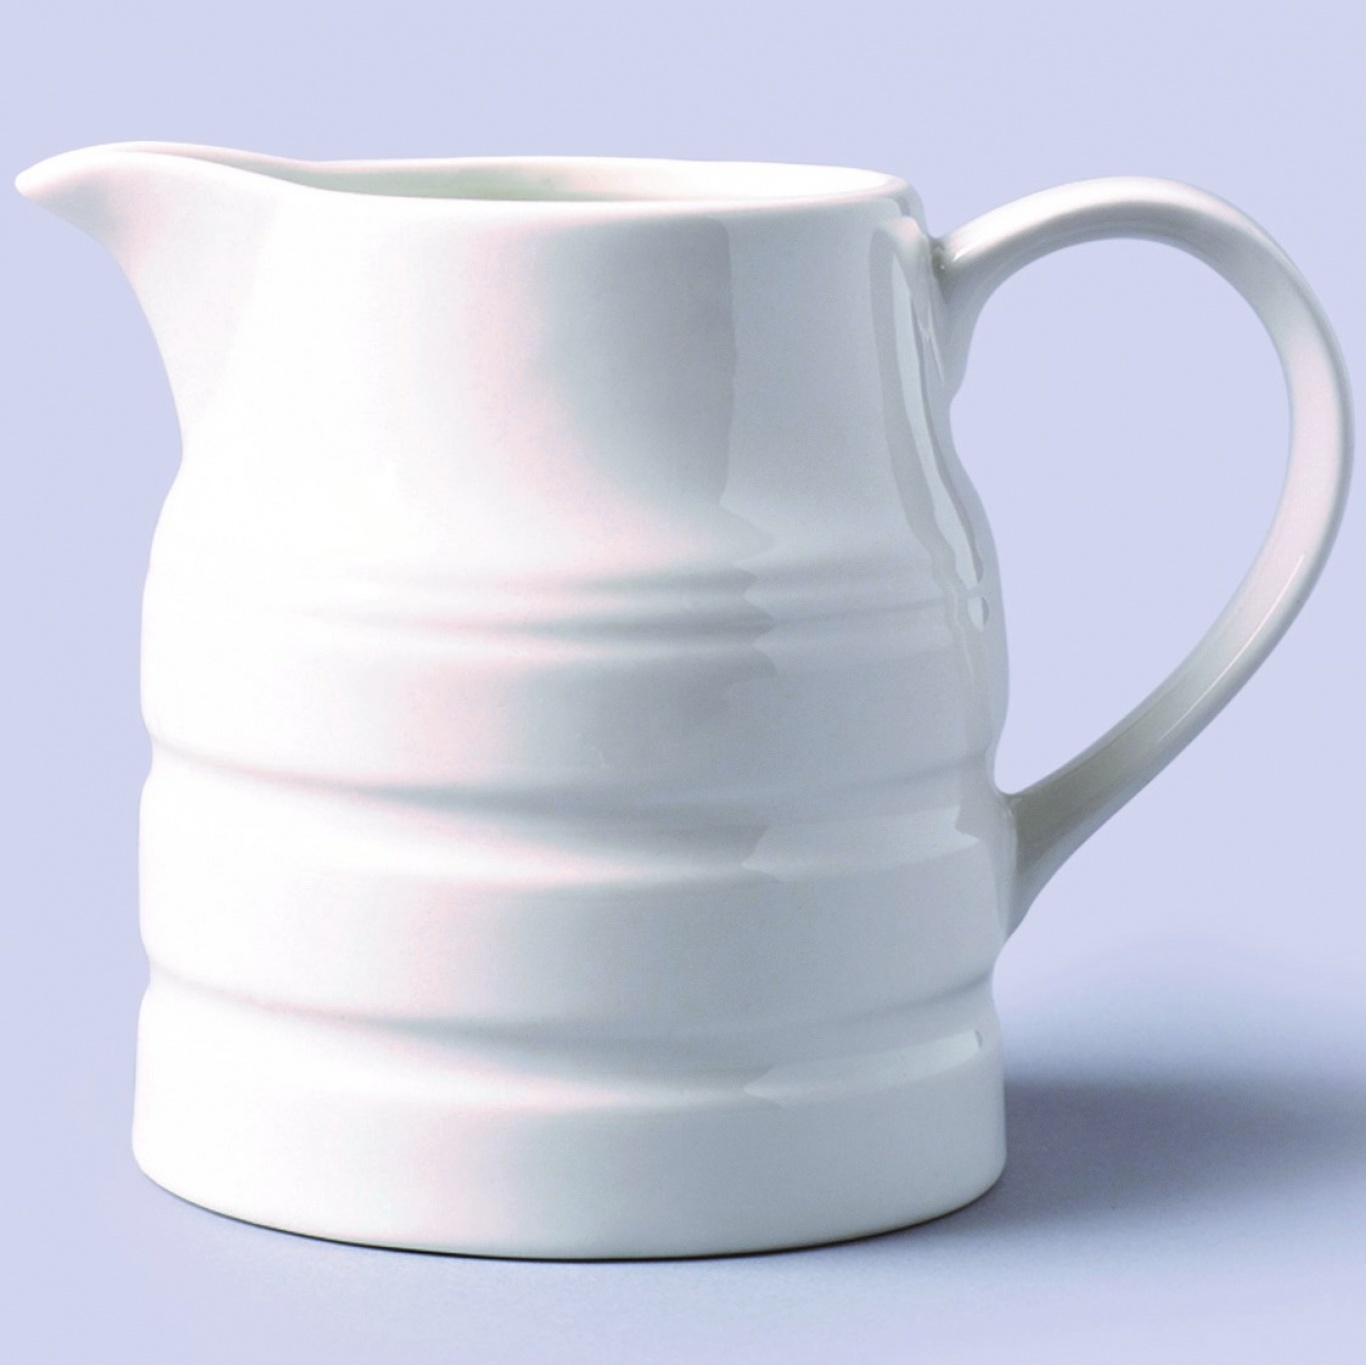 Image of Churn Jug 1 Pint